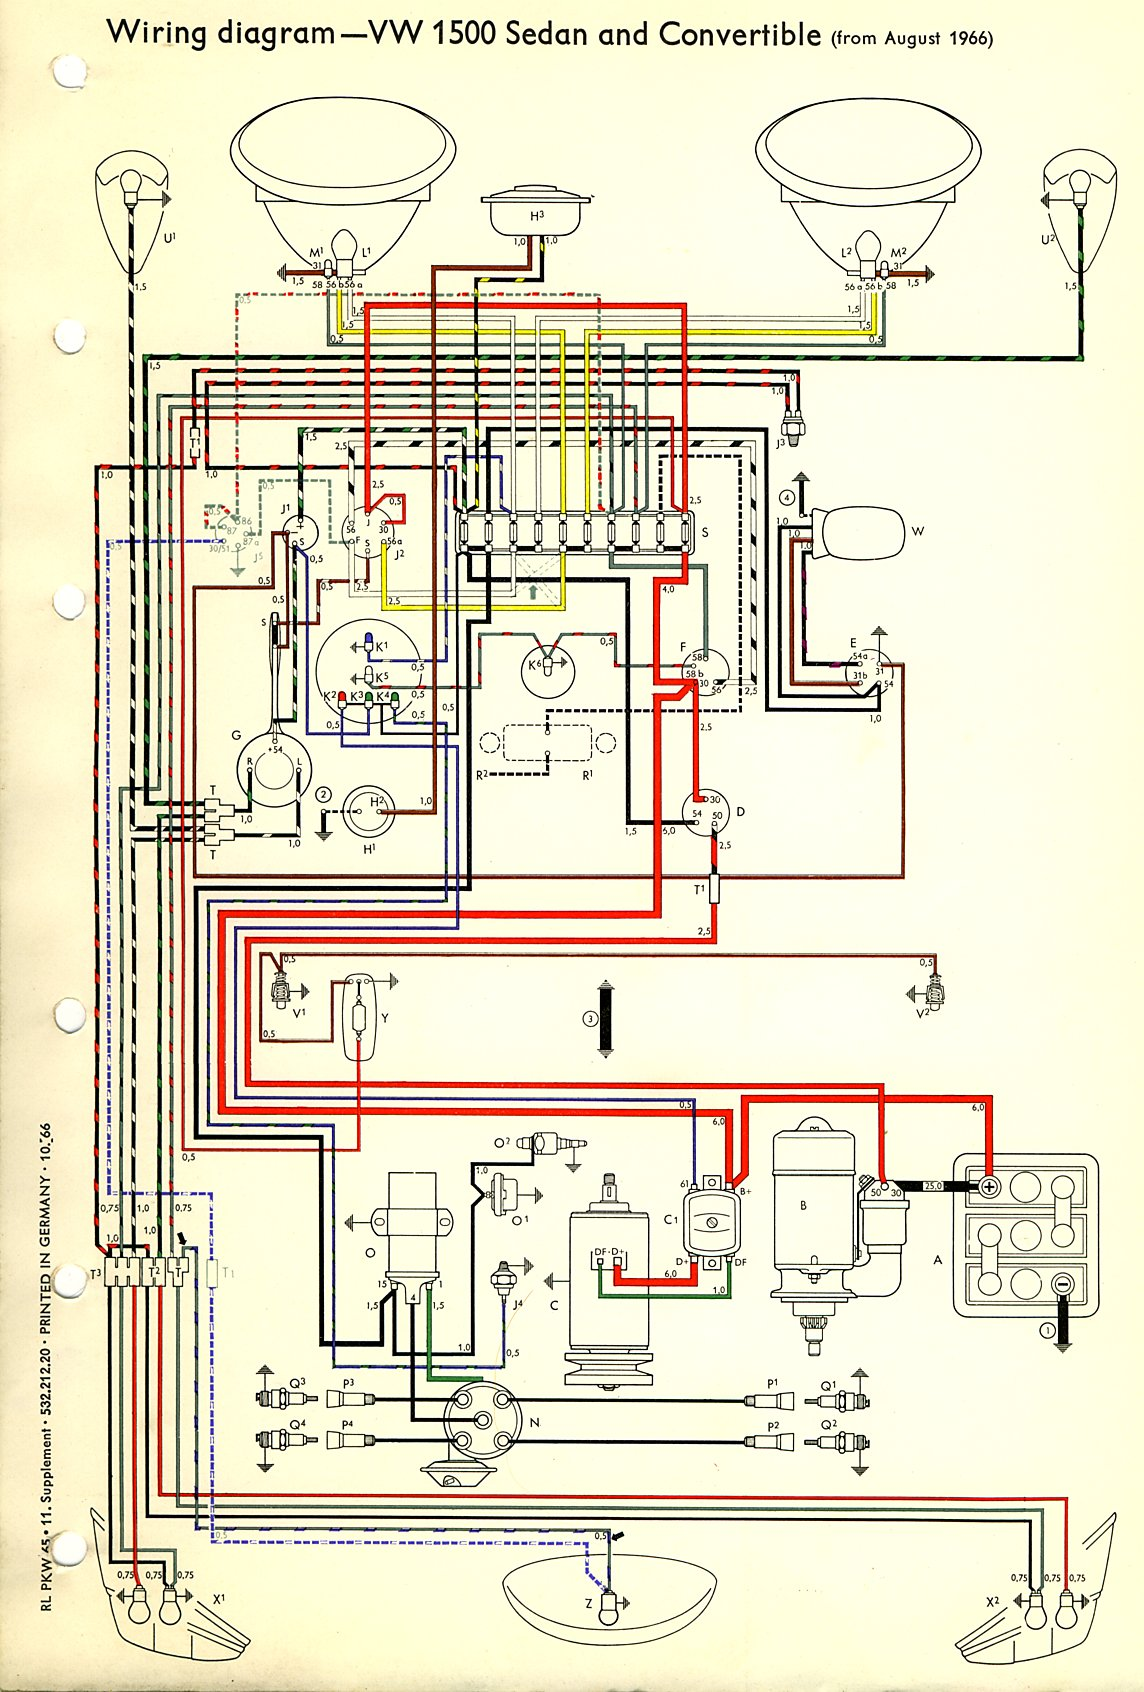 1967 vw wiring diagram wire center u2022 rh marstudios co 12 Fuse Box Volkswagen Bus Buss Fuse Box